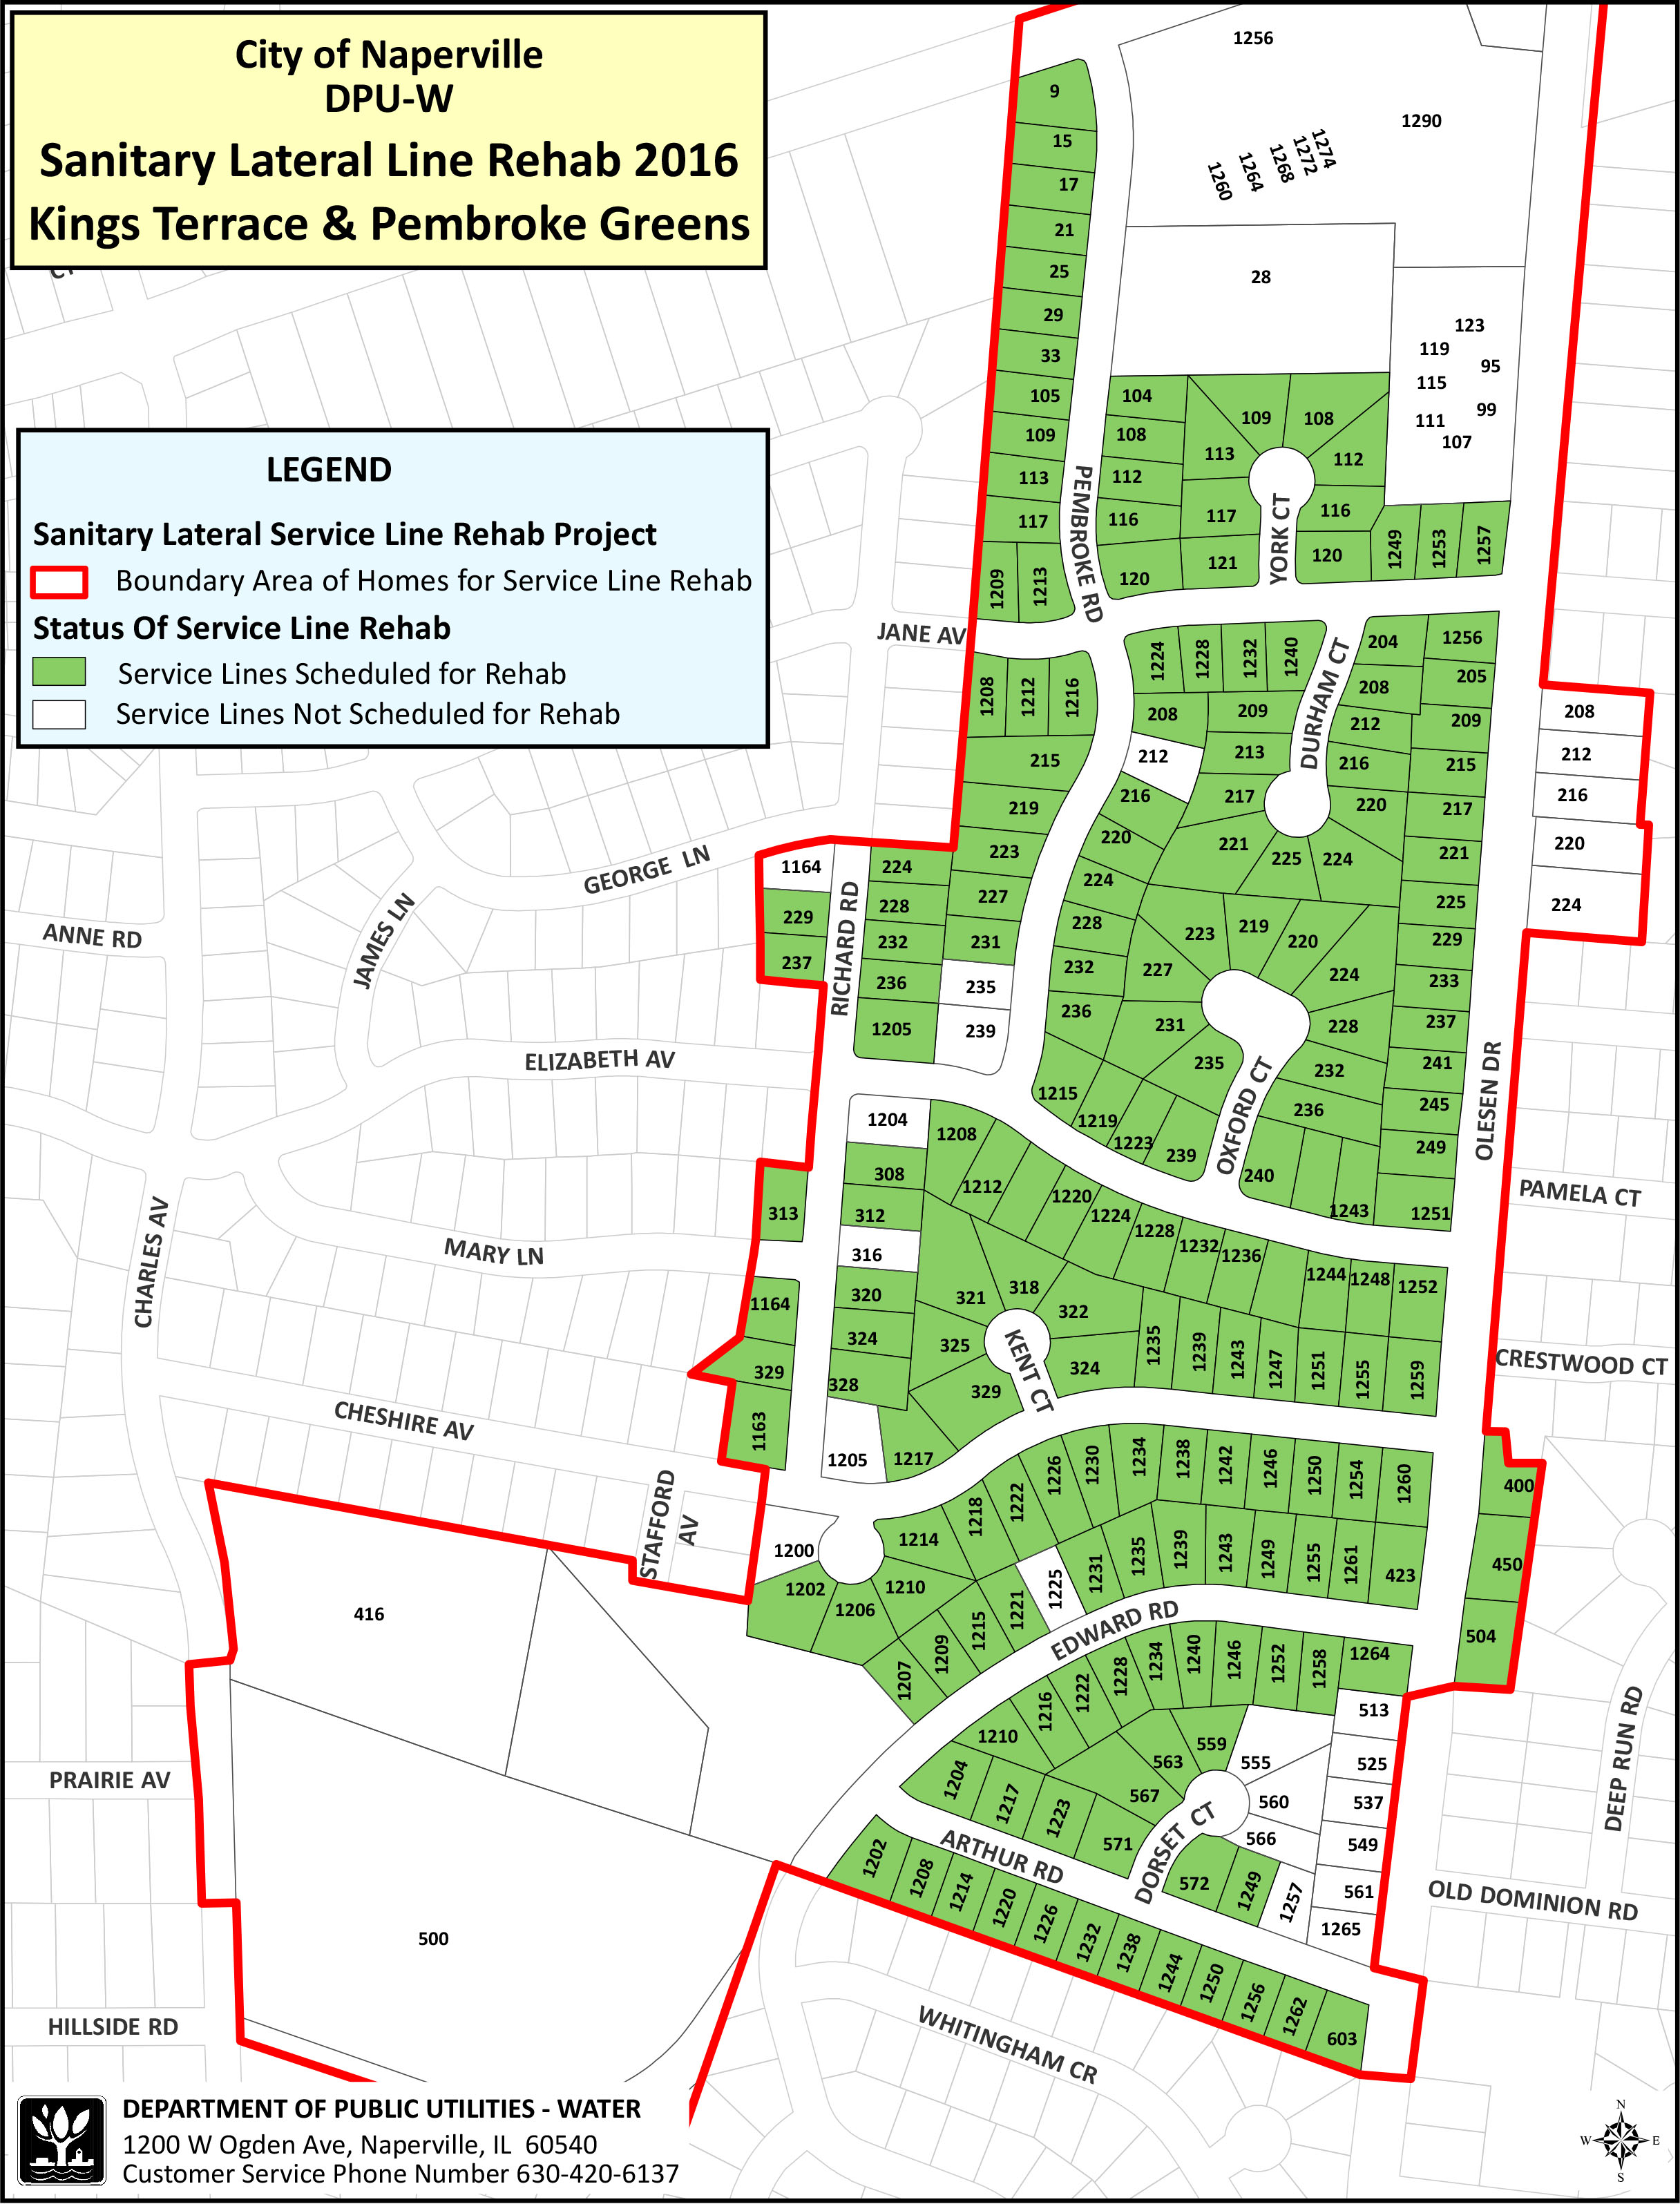 Residential Sanitary Sewer Lining Program | The City of Naperville